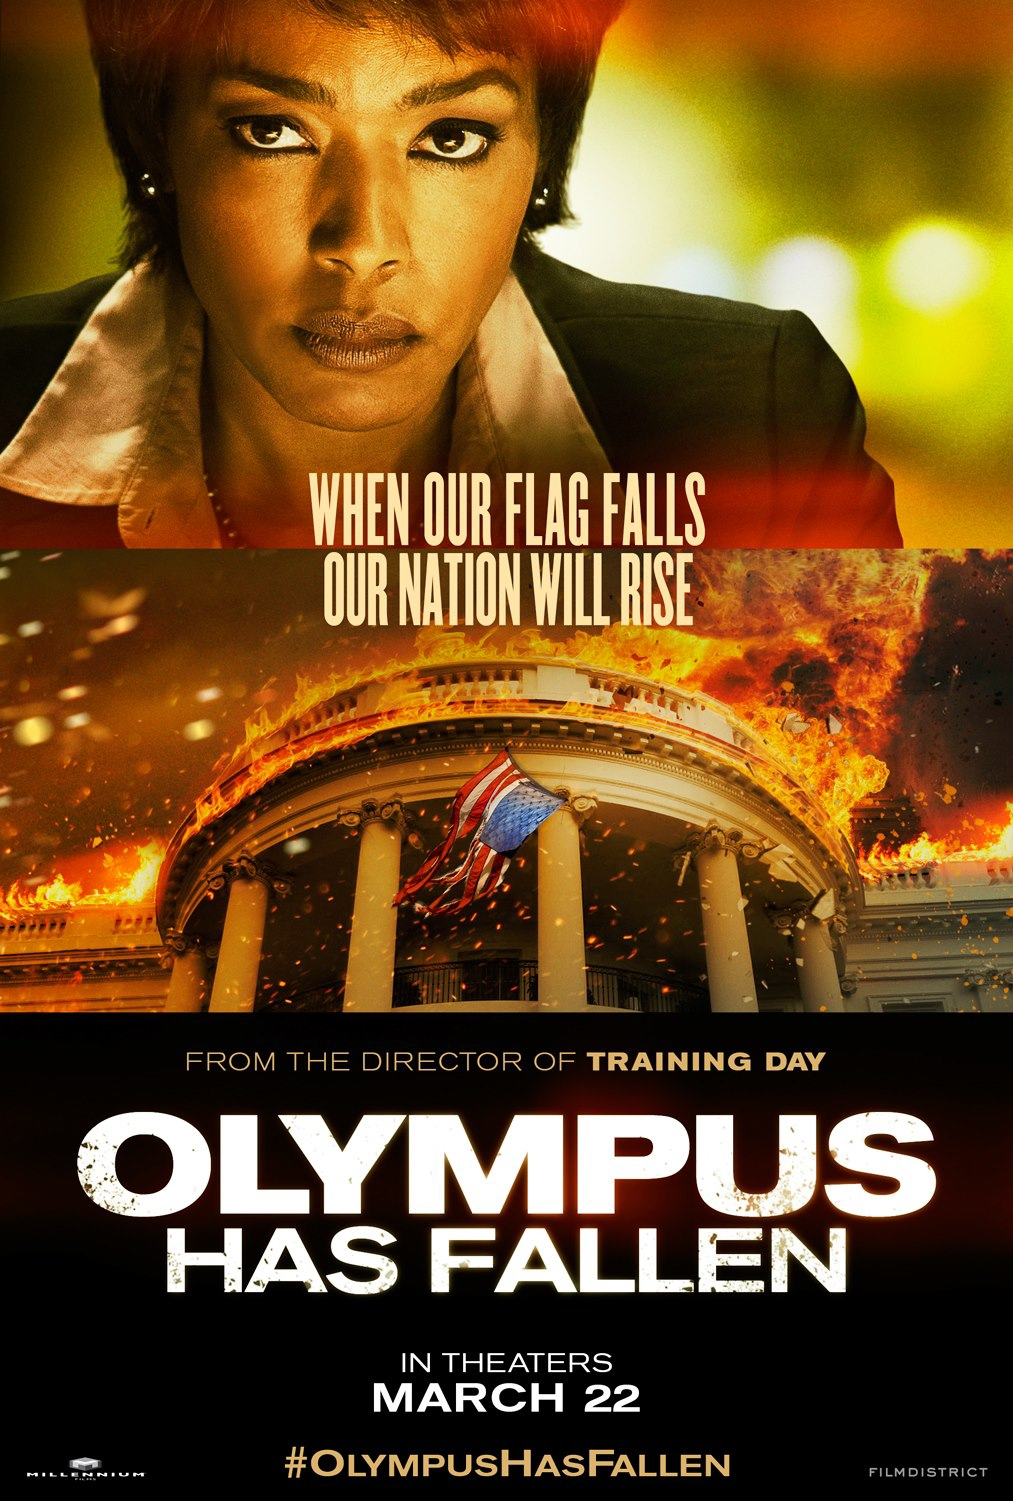 Olympus Has Fallen - Movie Poster #4 (Original)